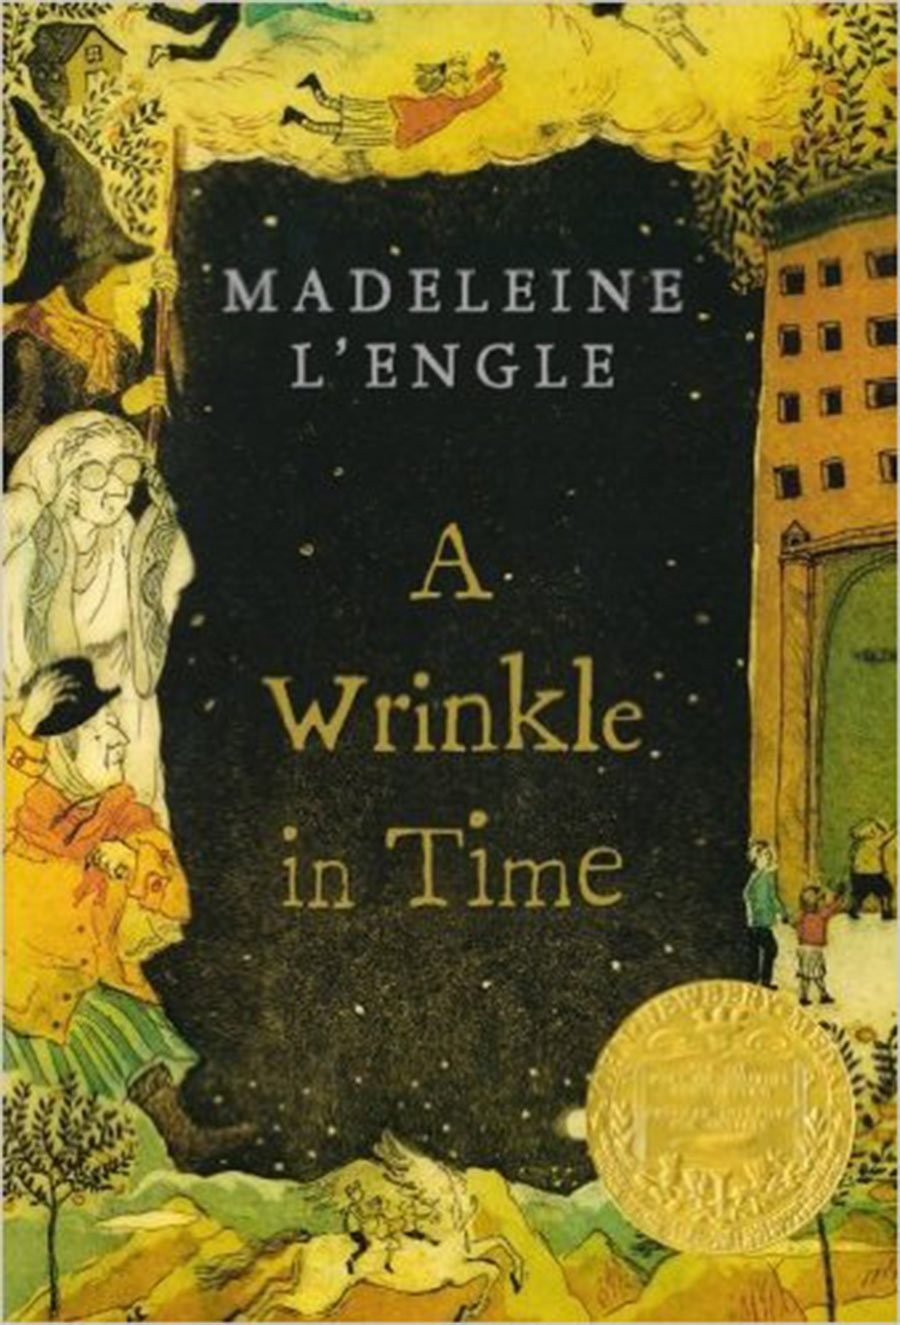 A Wrinkle in Time (Now a Major Motion Picture), Paperback by Madeleine L'Engle - MGworld